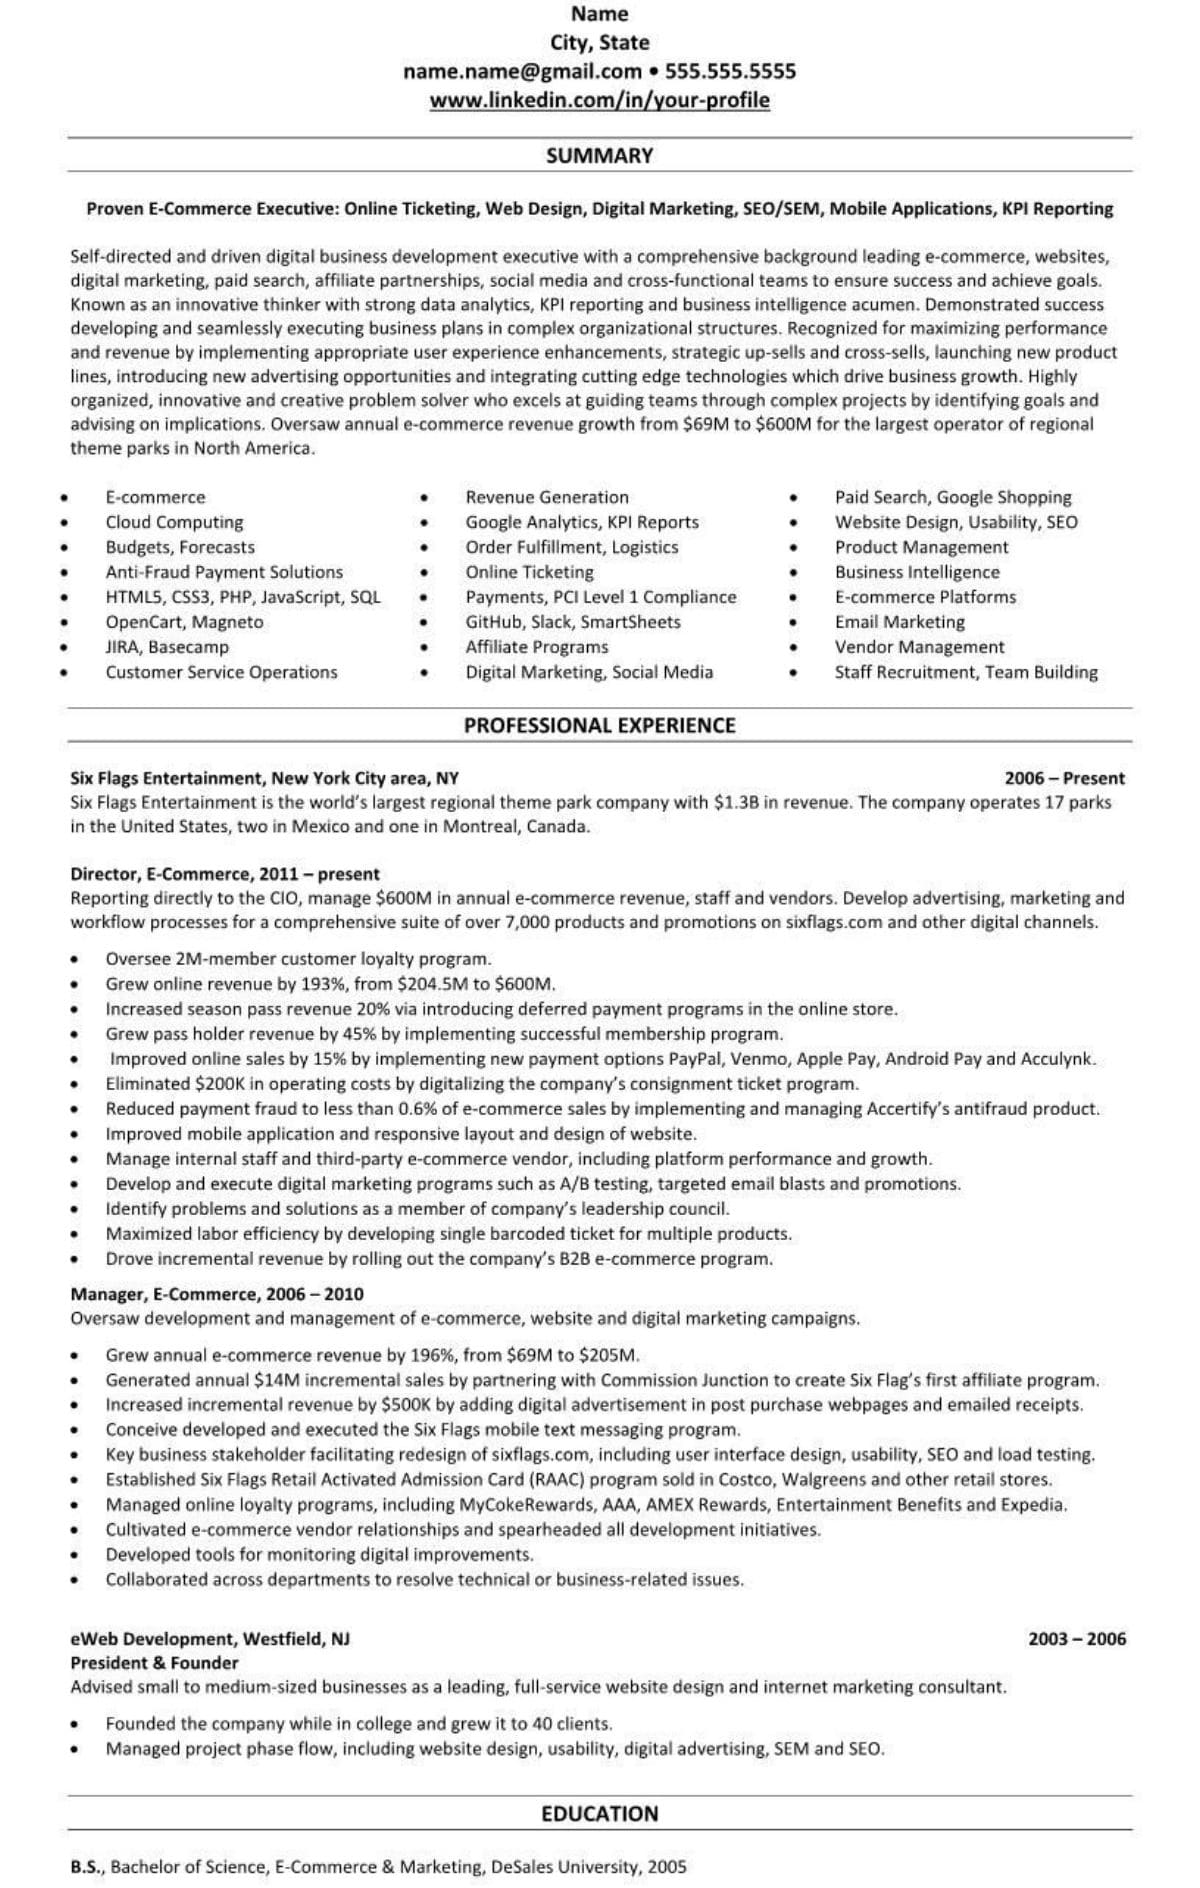 professional/executive resume example e-commerce mobile apps 1959